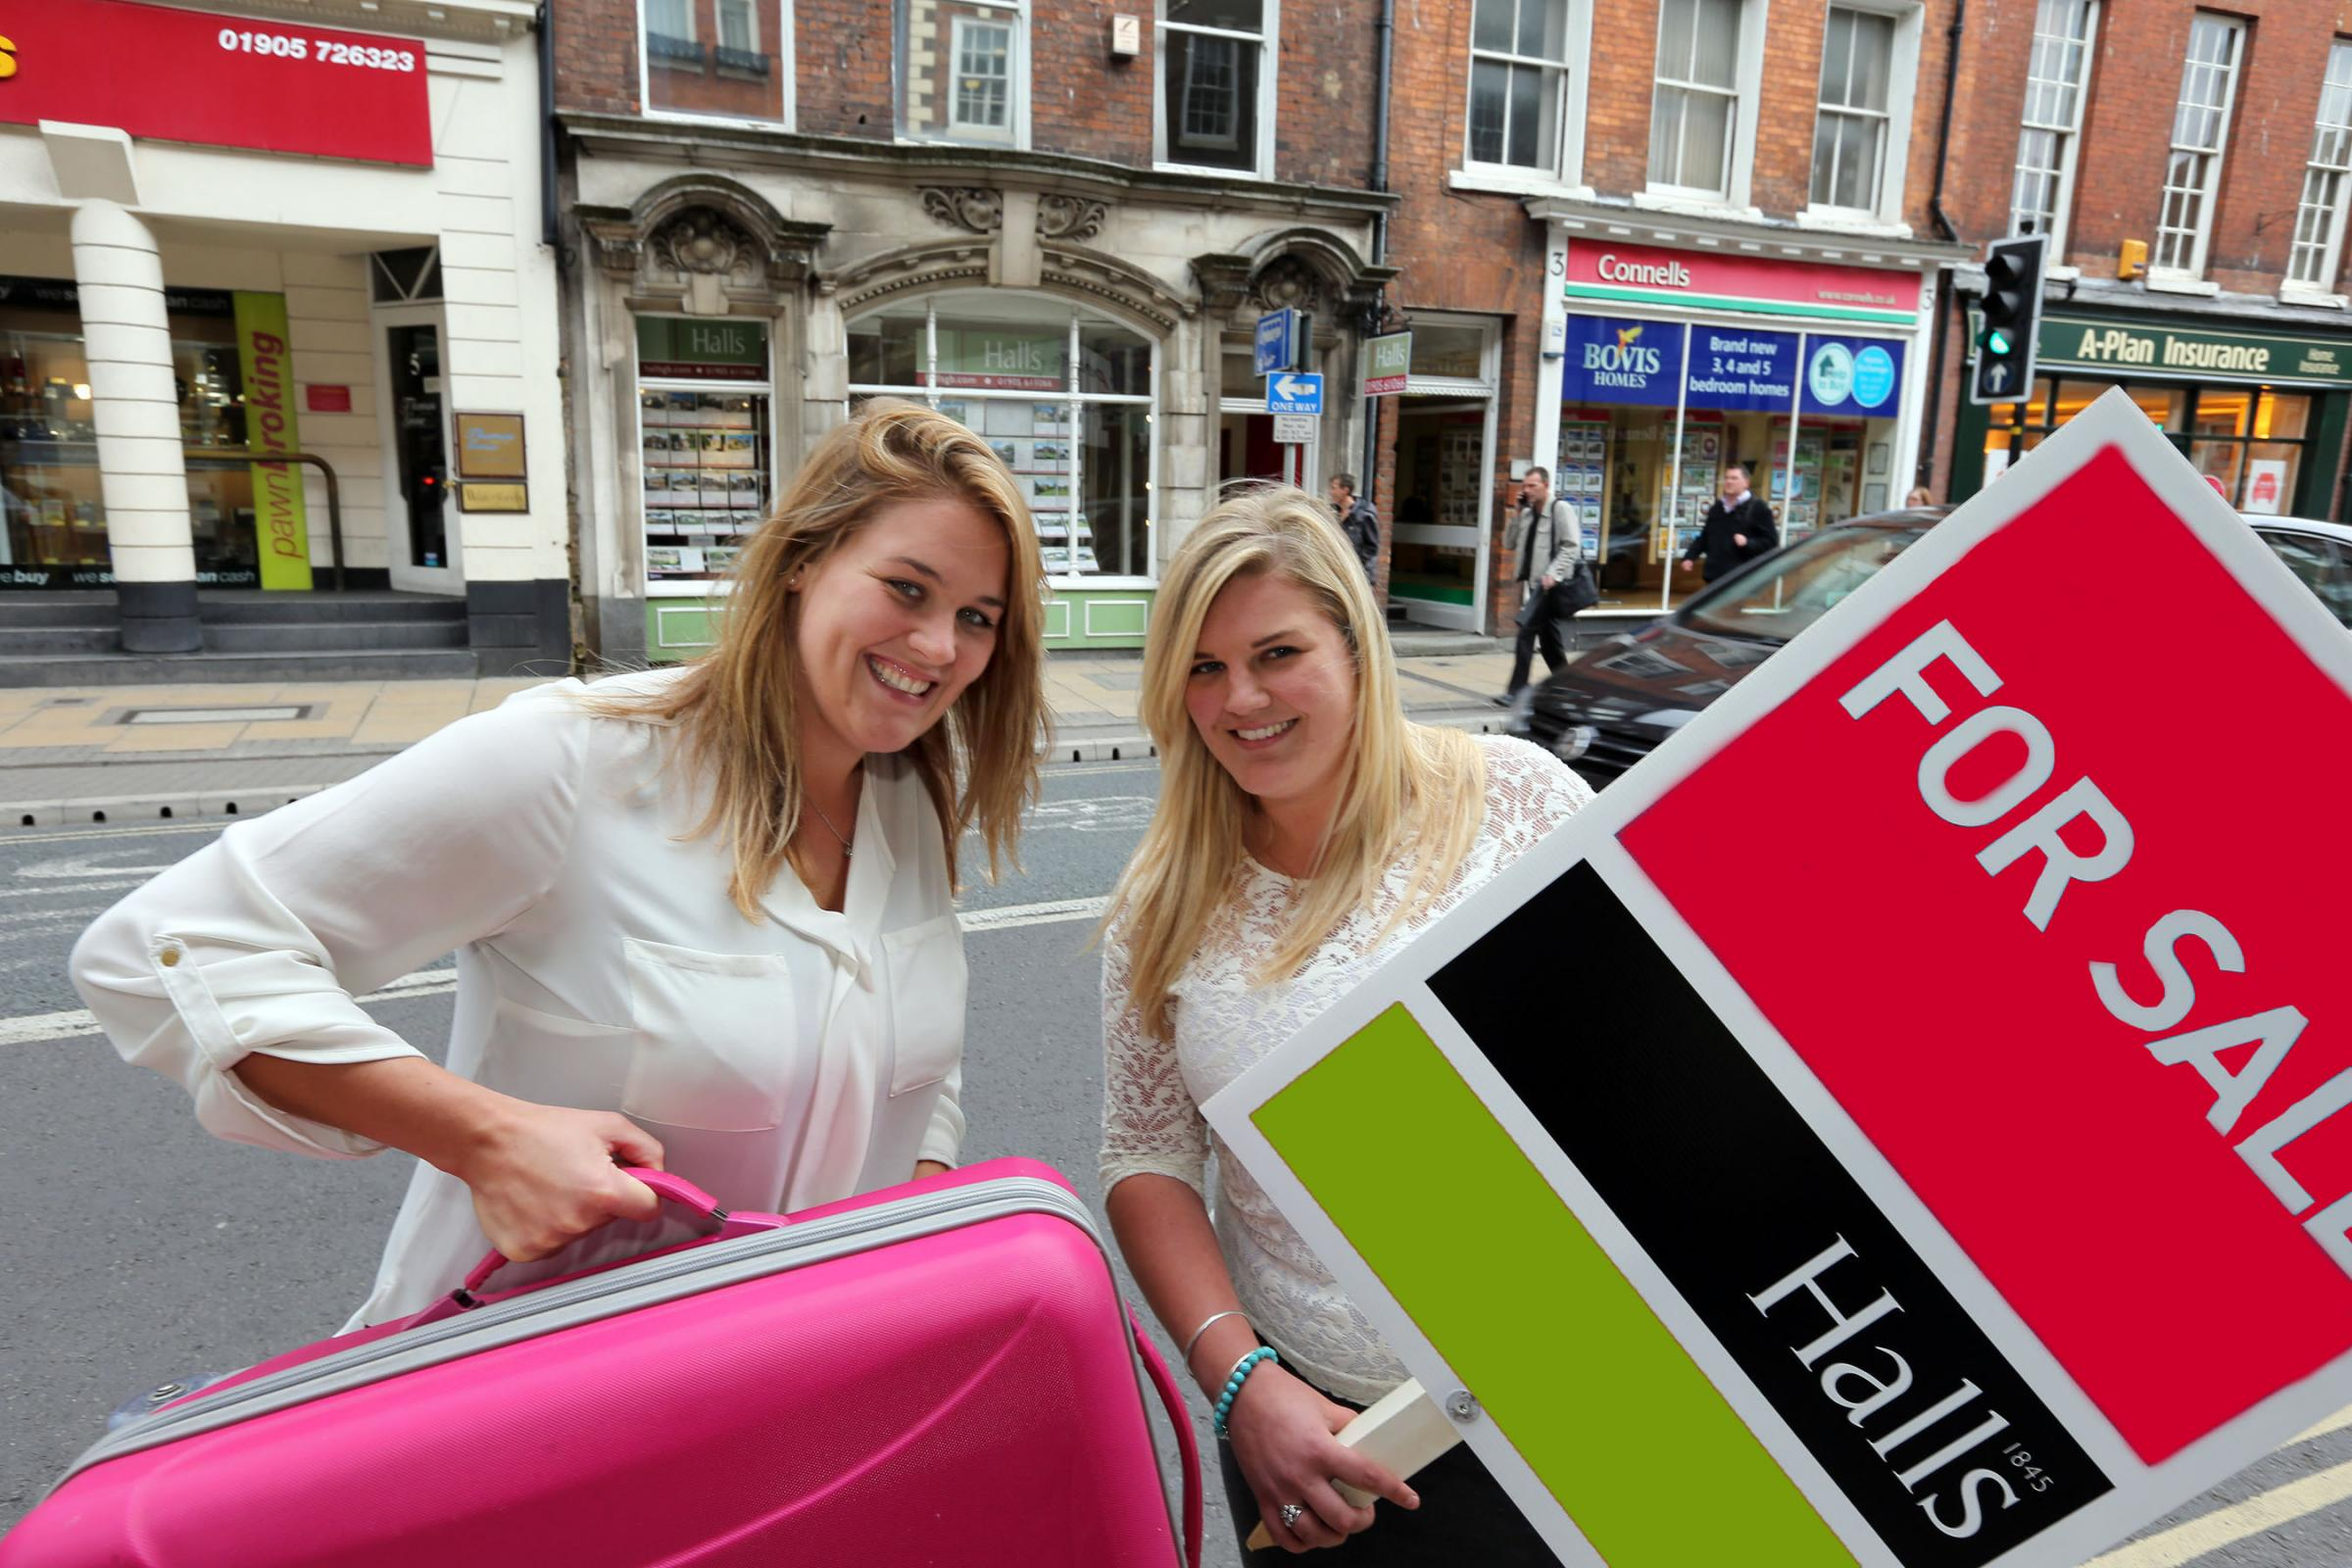 MOVING: Stephanie Doolittle (left) and Demi Owen of Halls Worcester residential team pack for the move.